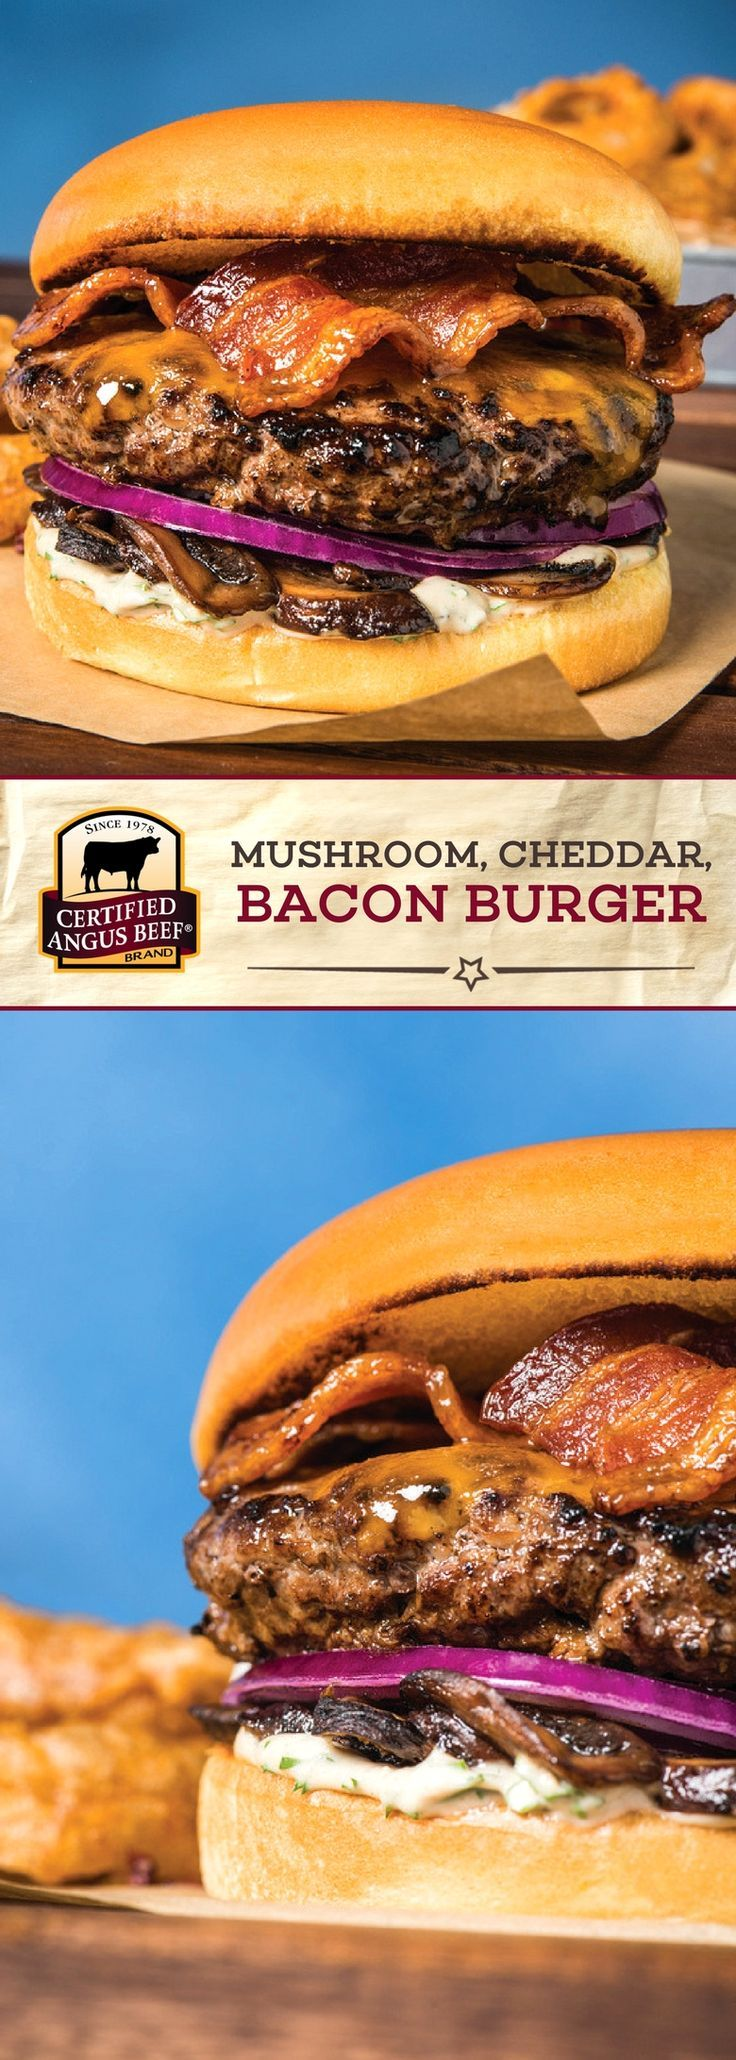 Mushroom, Cheddar, and Bacon Burger